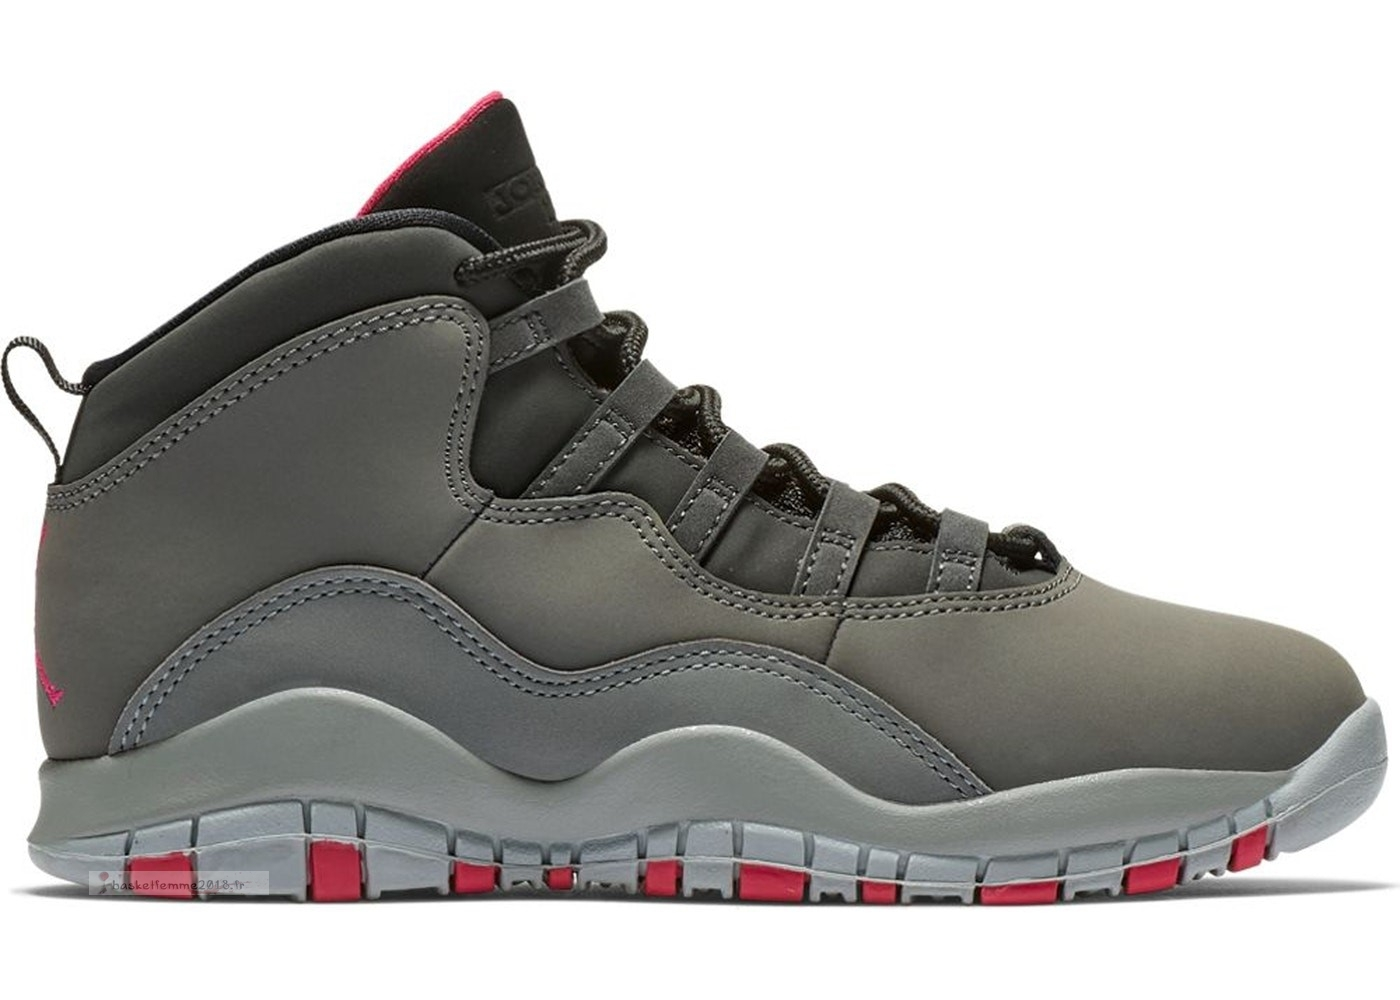 Air Jordan 10 Retro Rush Pink (Ps) Gris (487212-006) Chaussure de Basket